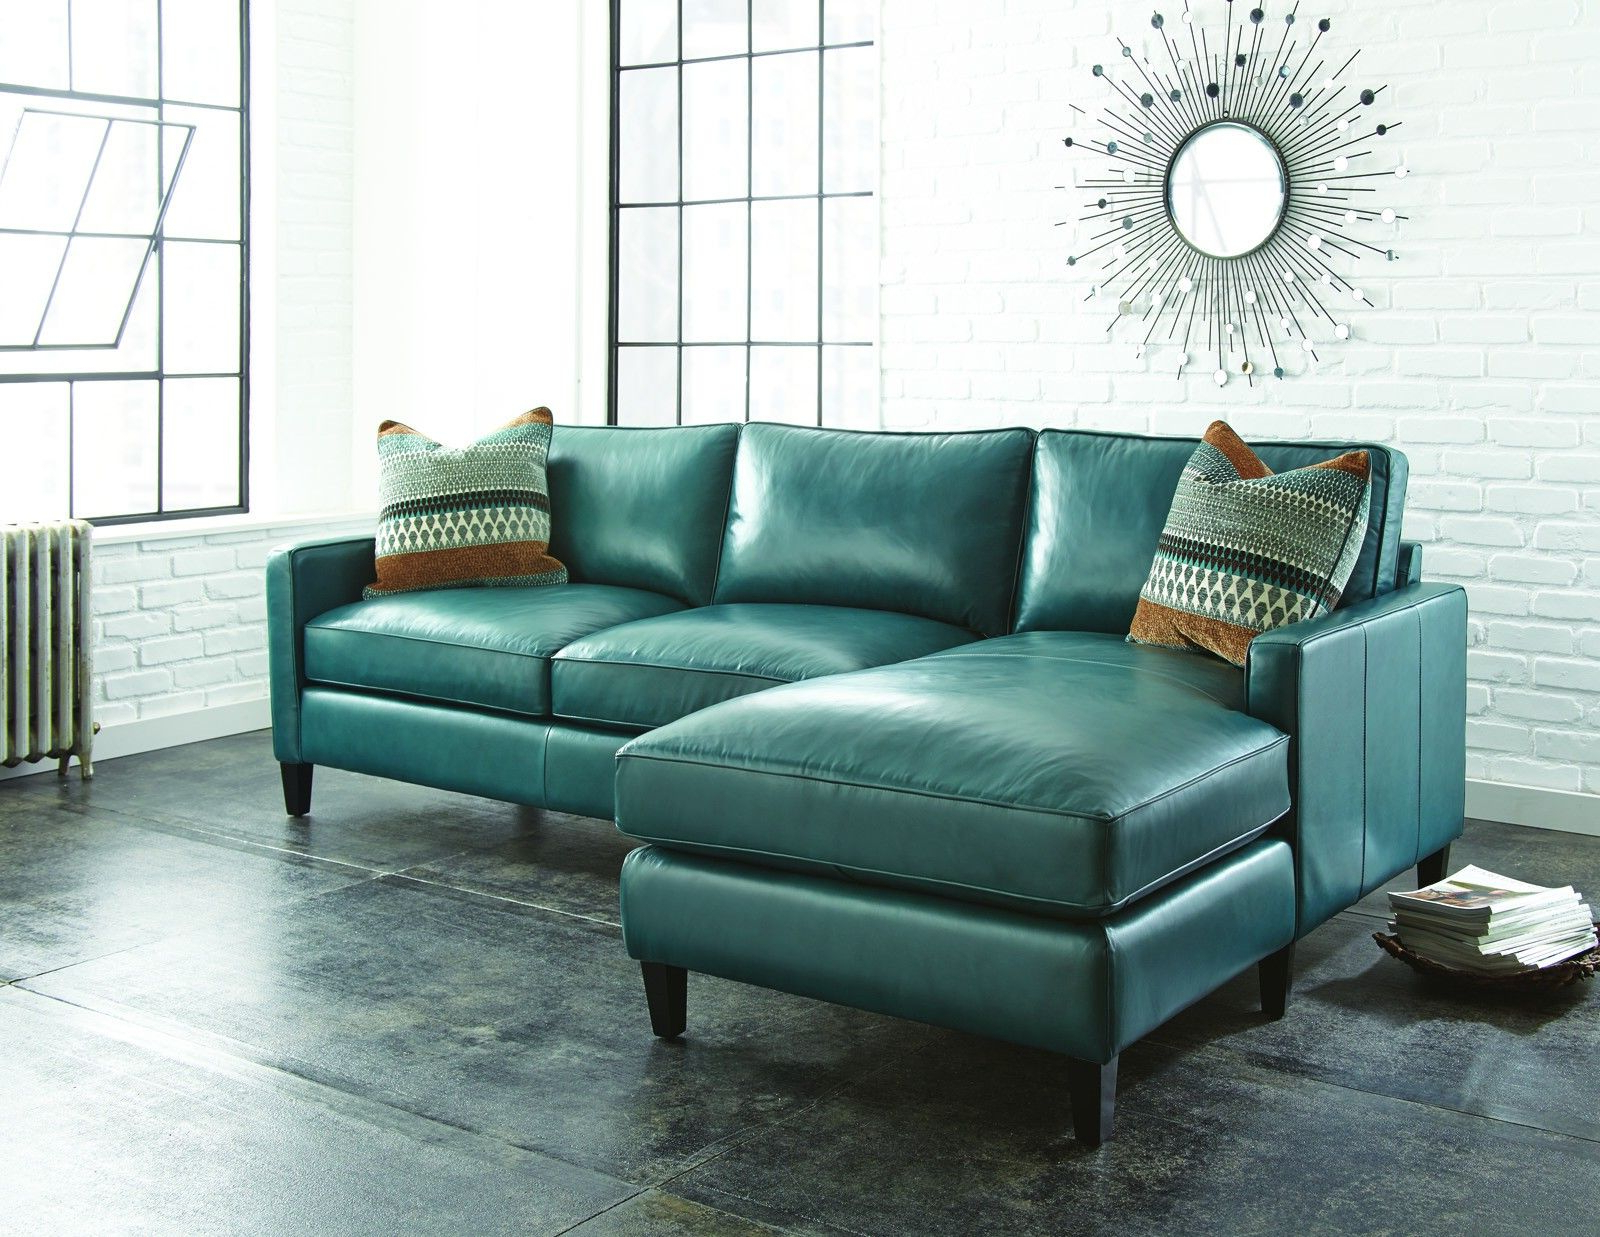 Gina Blue Leather Sofa Chairs In Best And Newest How To Reupholster Leather Furniture In 5 Easy Steps (View 9 of 20)